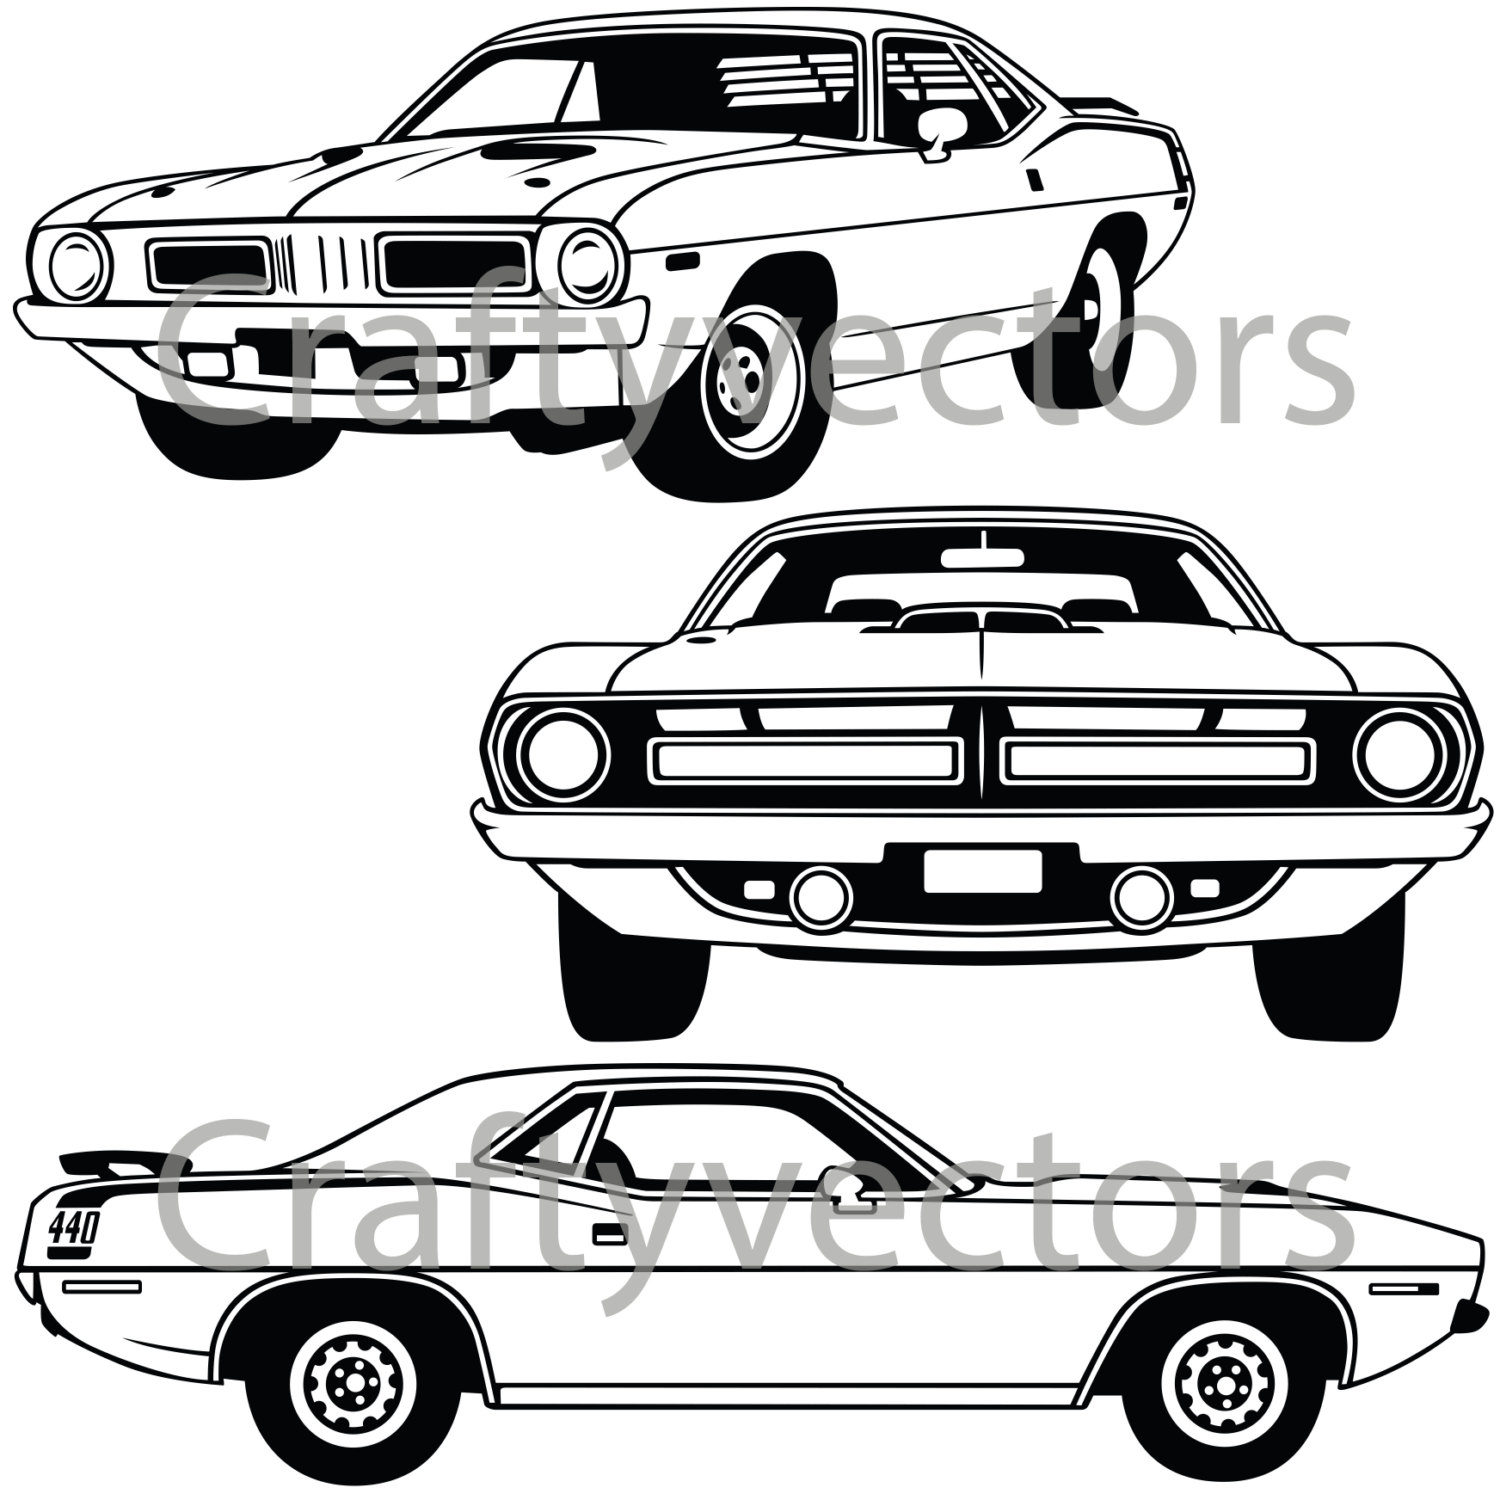 Plymouth Barracuda svg #13, Download drawings